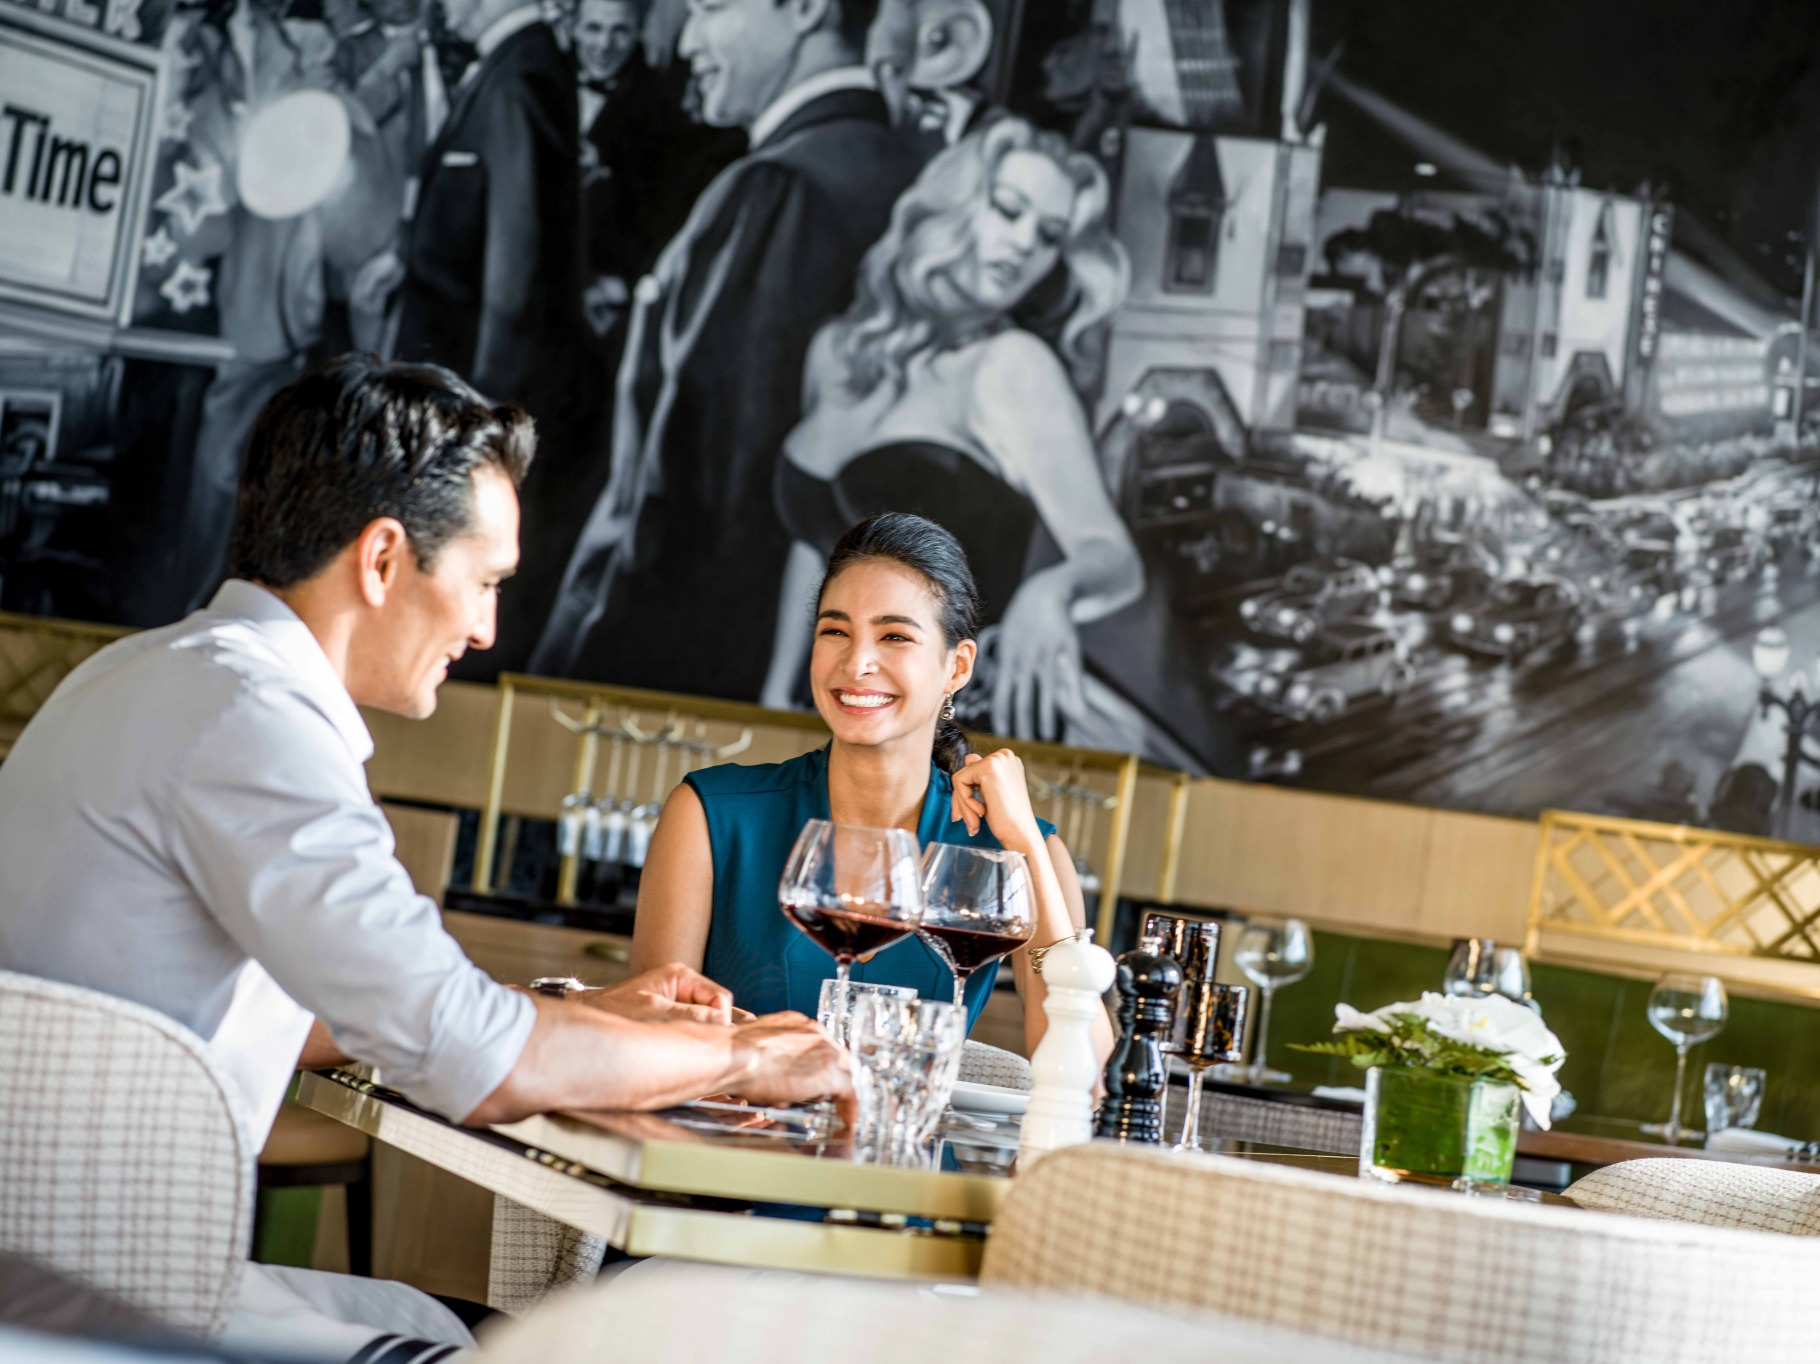 Stellar Steakhouse is a place for couple to celebrate and connect